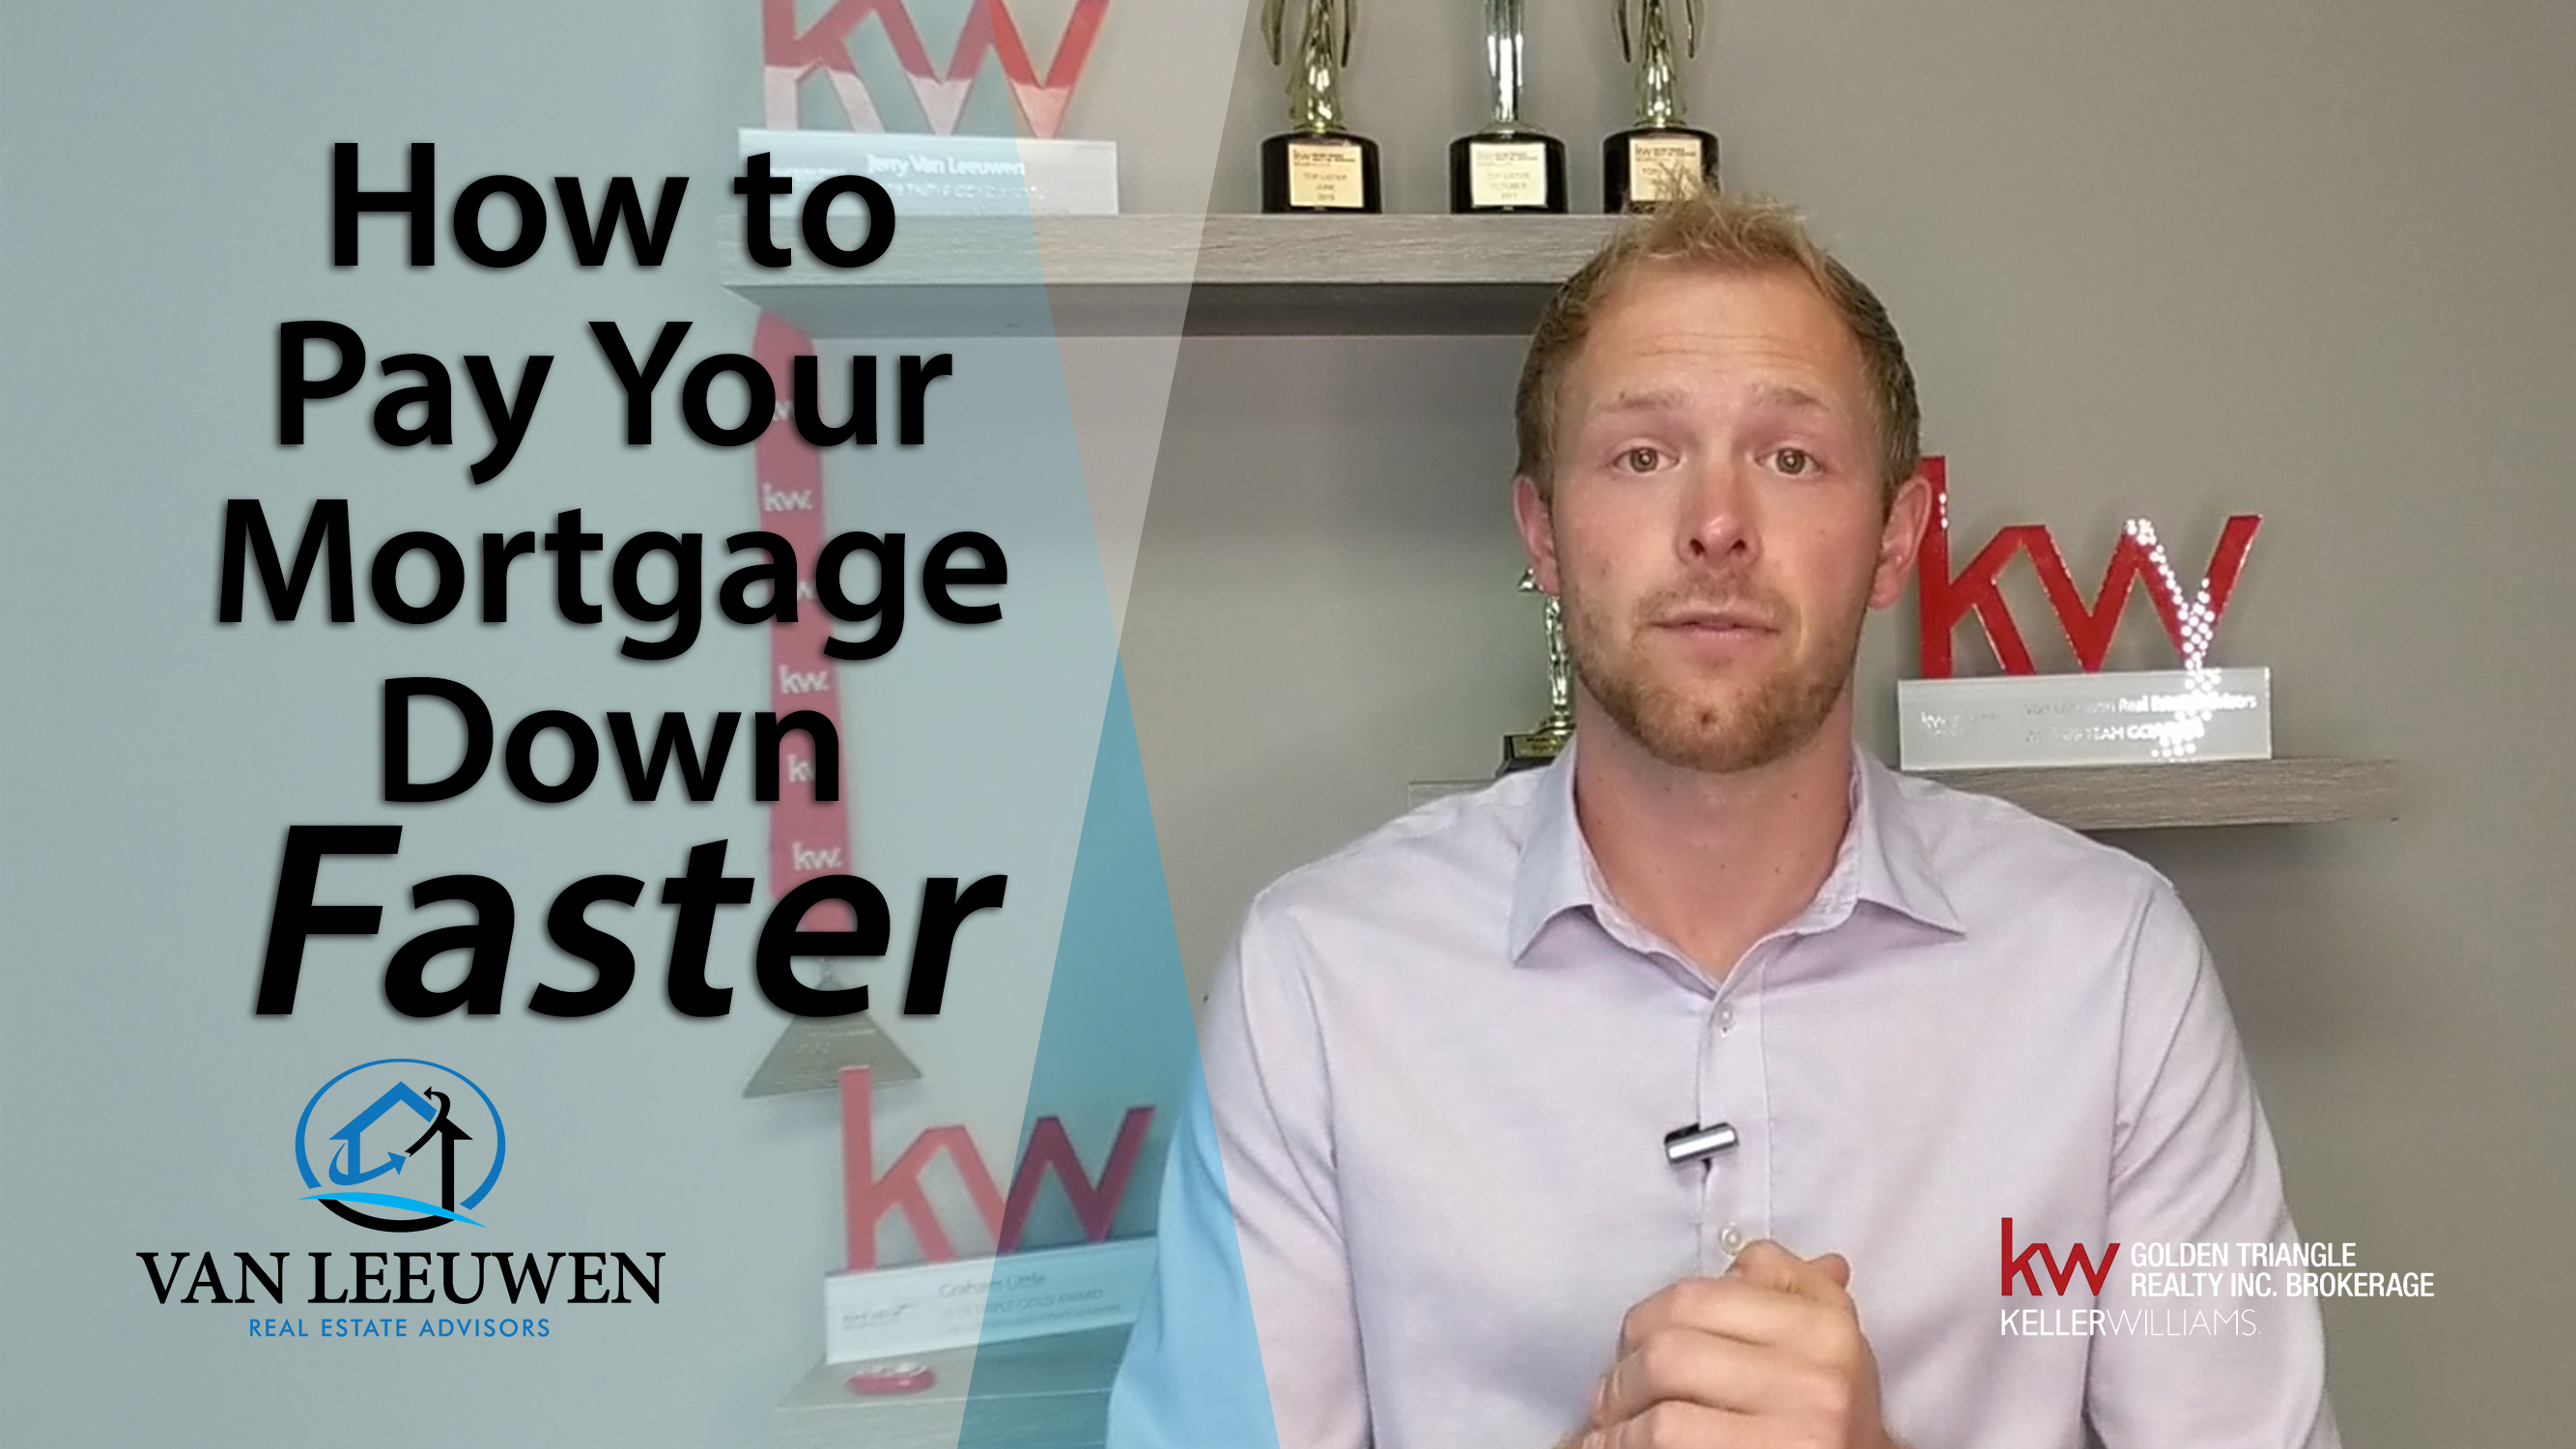 3 Quick Tips for Paying Down Your Mortgage Faster